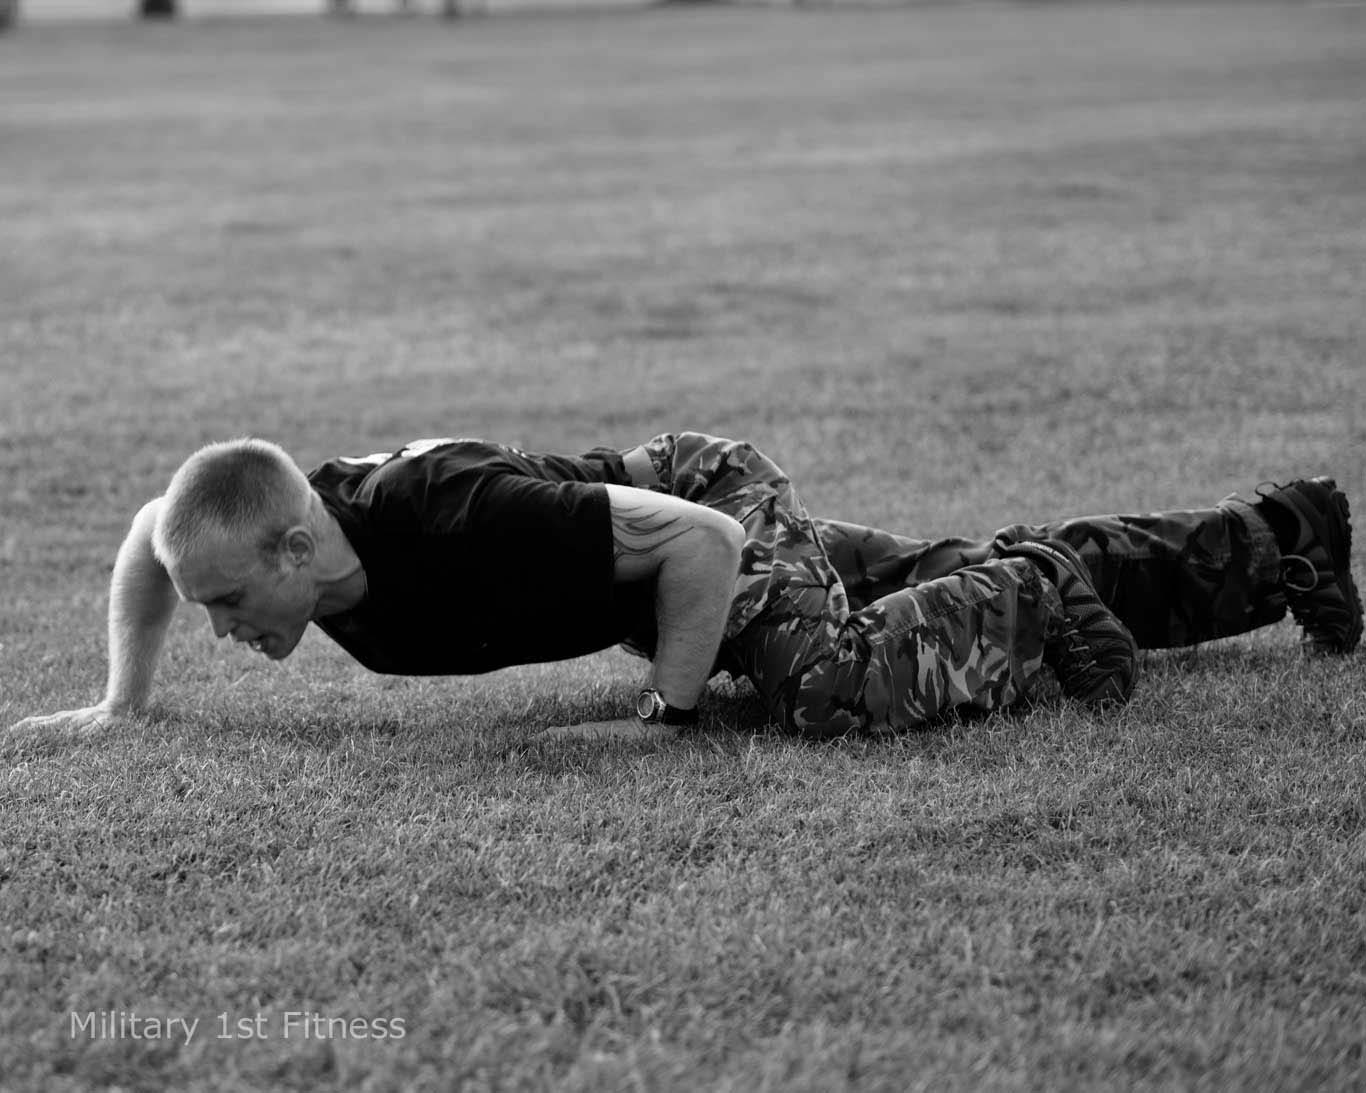 Military 1st Fitness army fitness training, Harrogate HG2 8AR